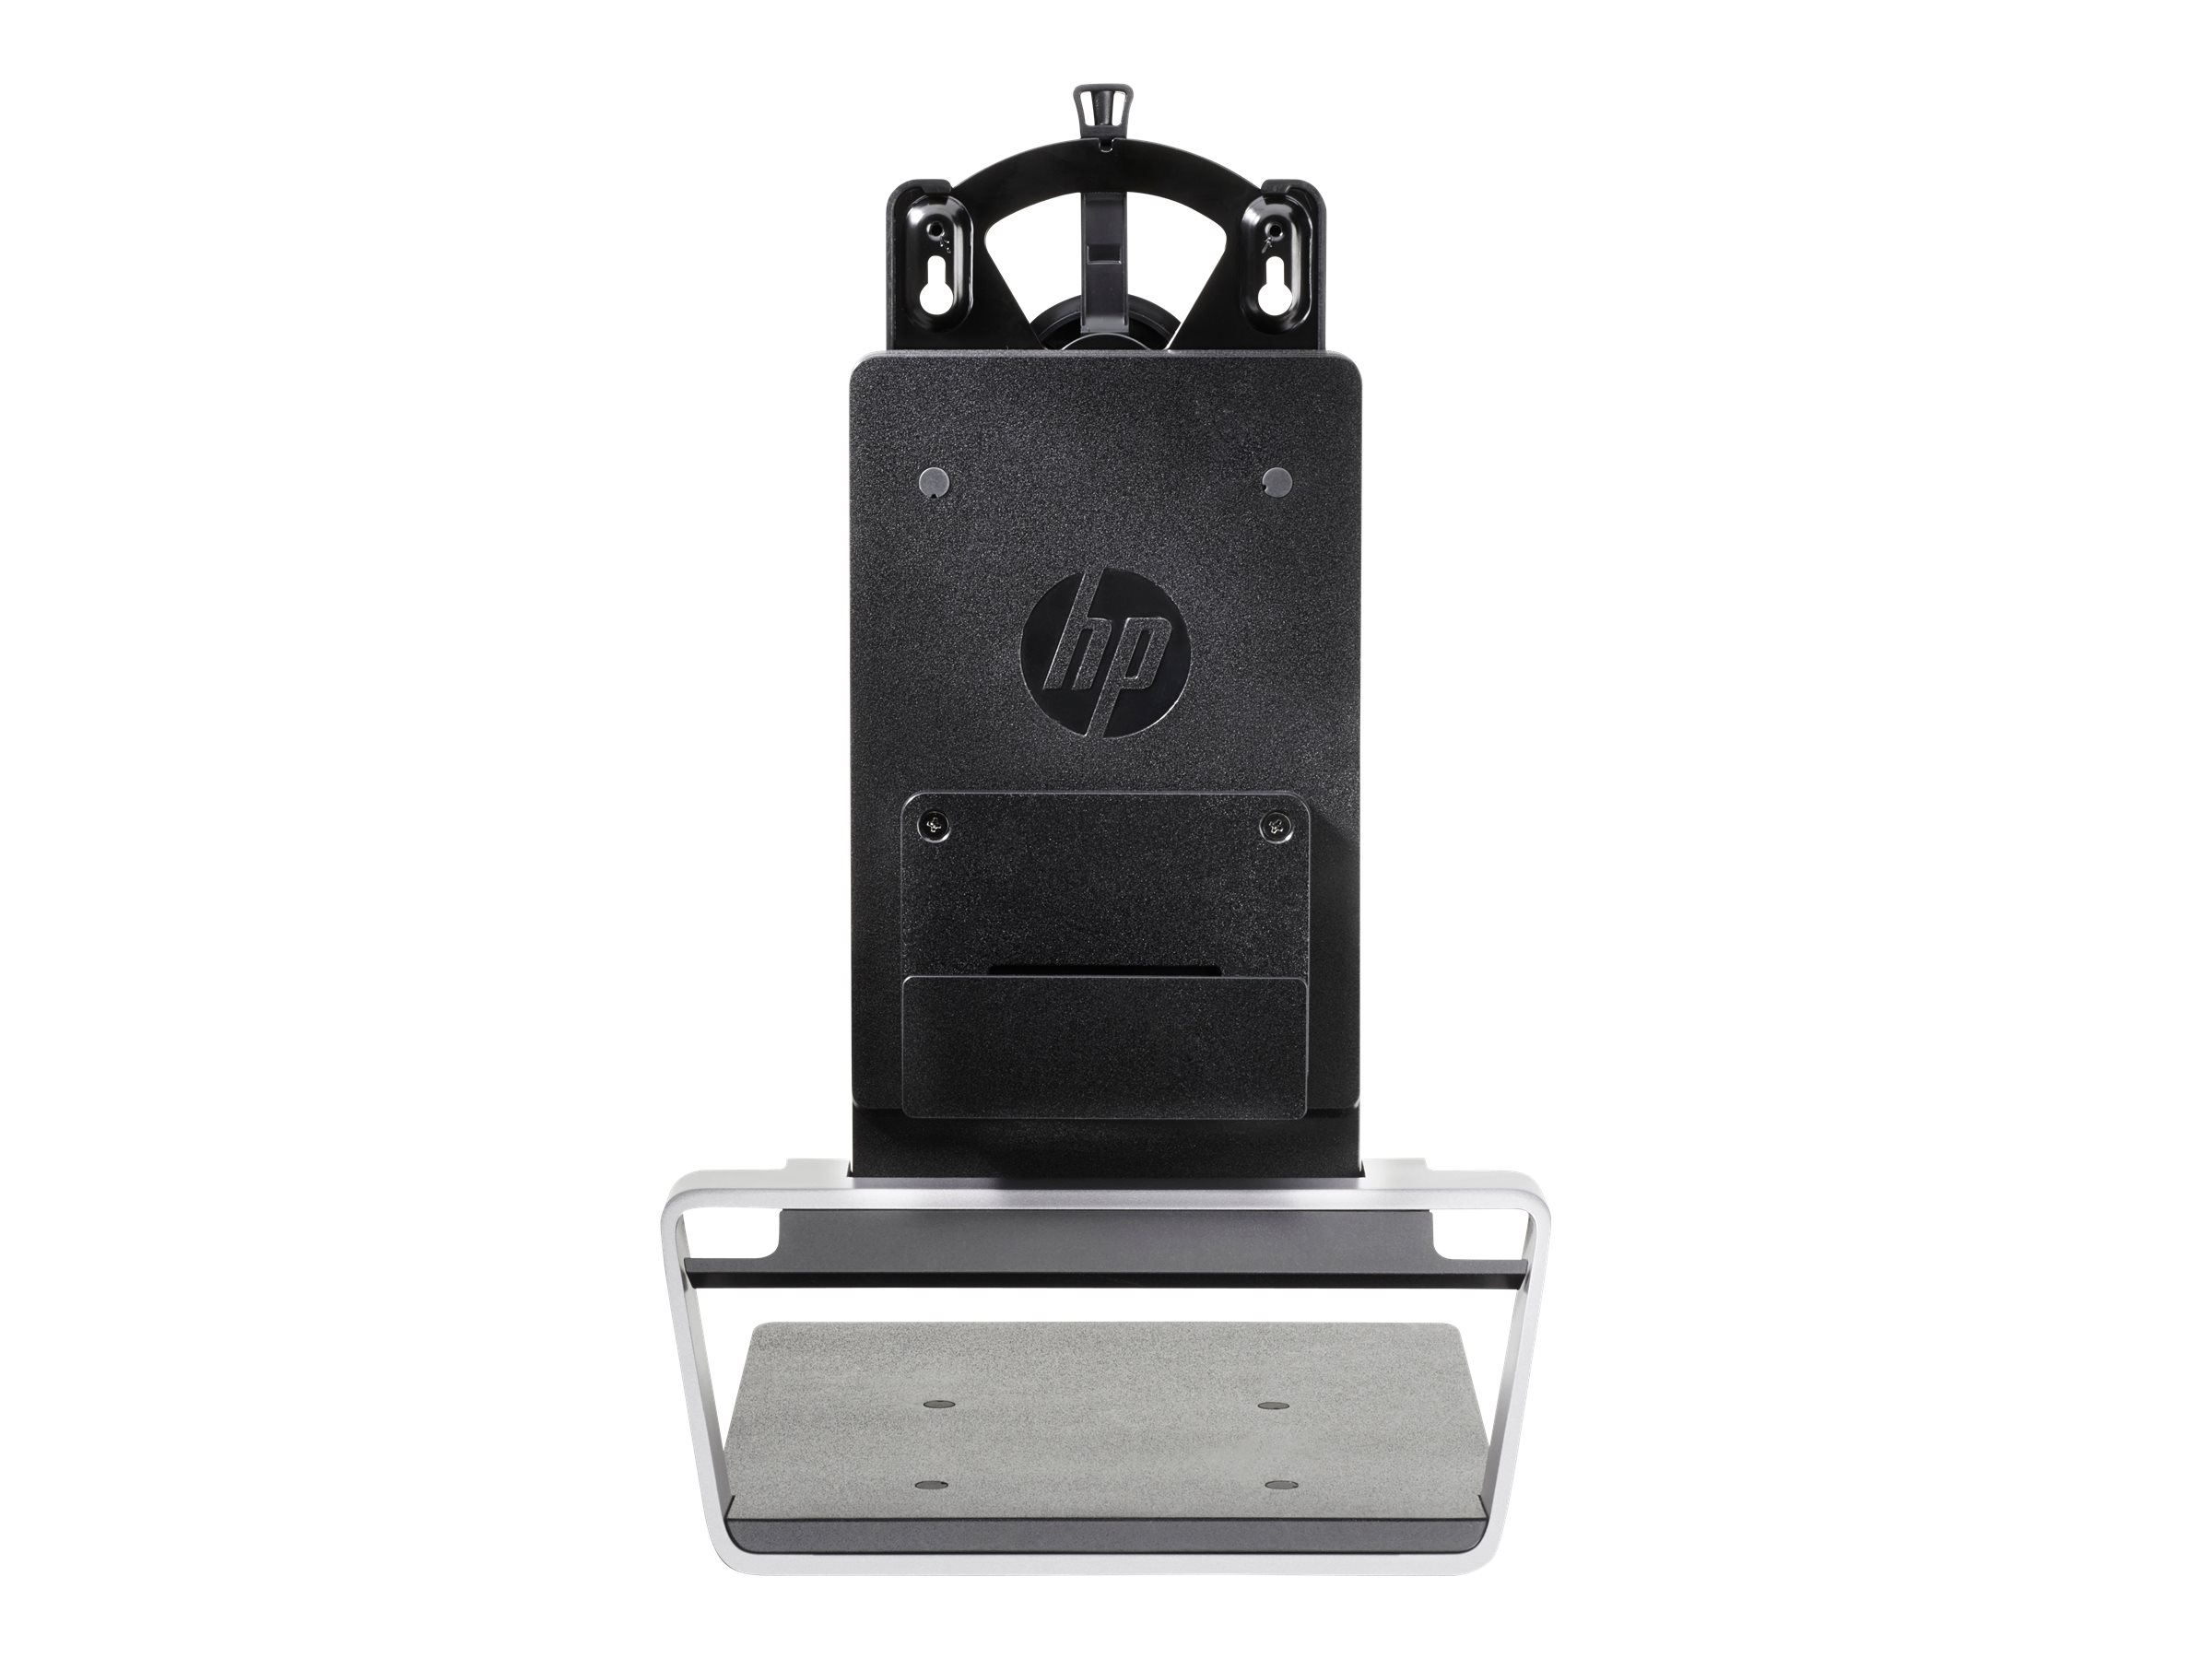 HP Integrated Work Center Stand Desktop Mini / Thin Clients monitor/desktop stand